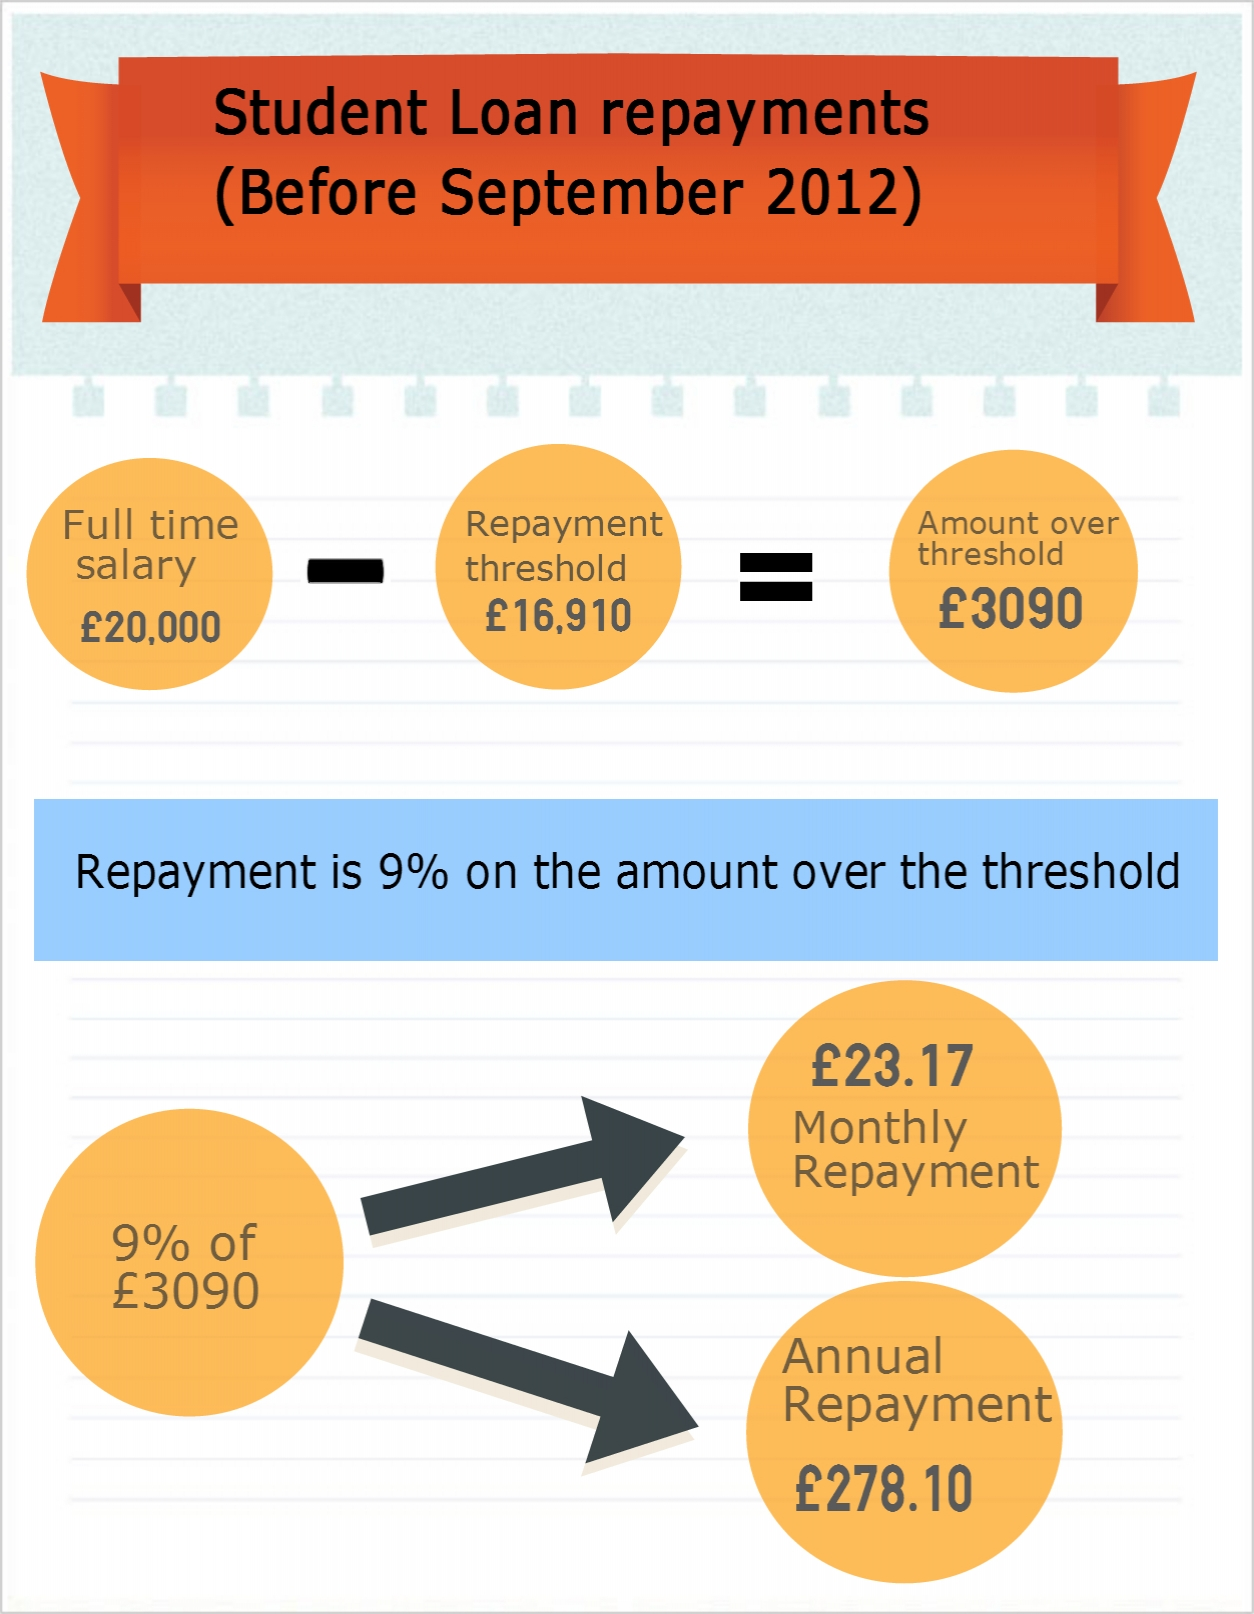 Student Loan repayments pre-September 2012